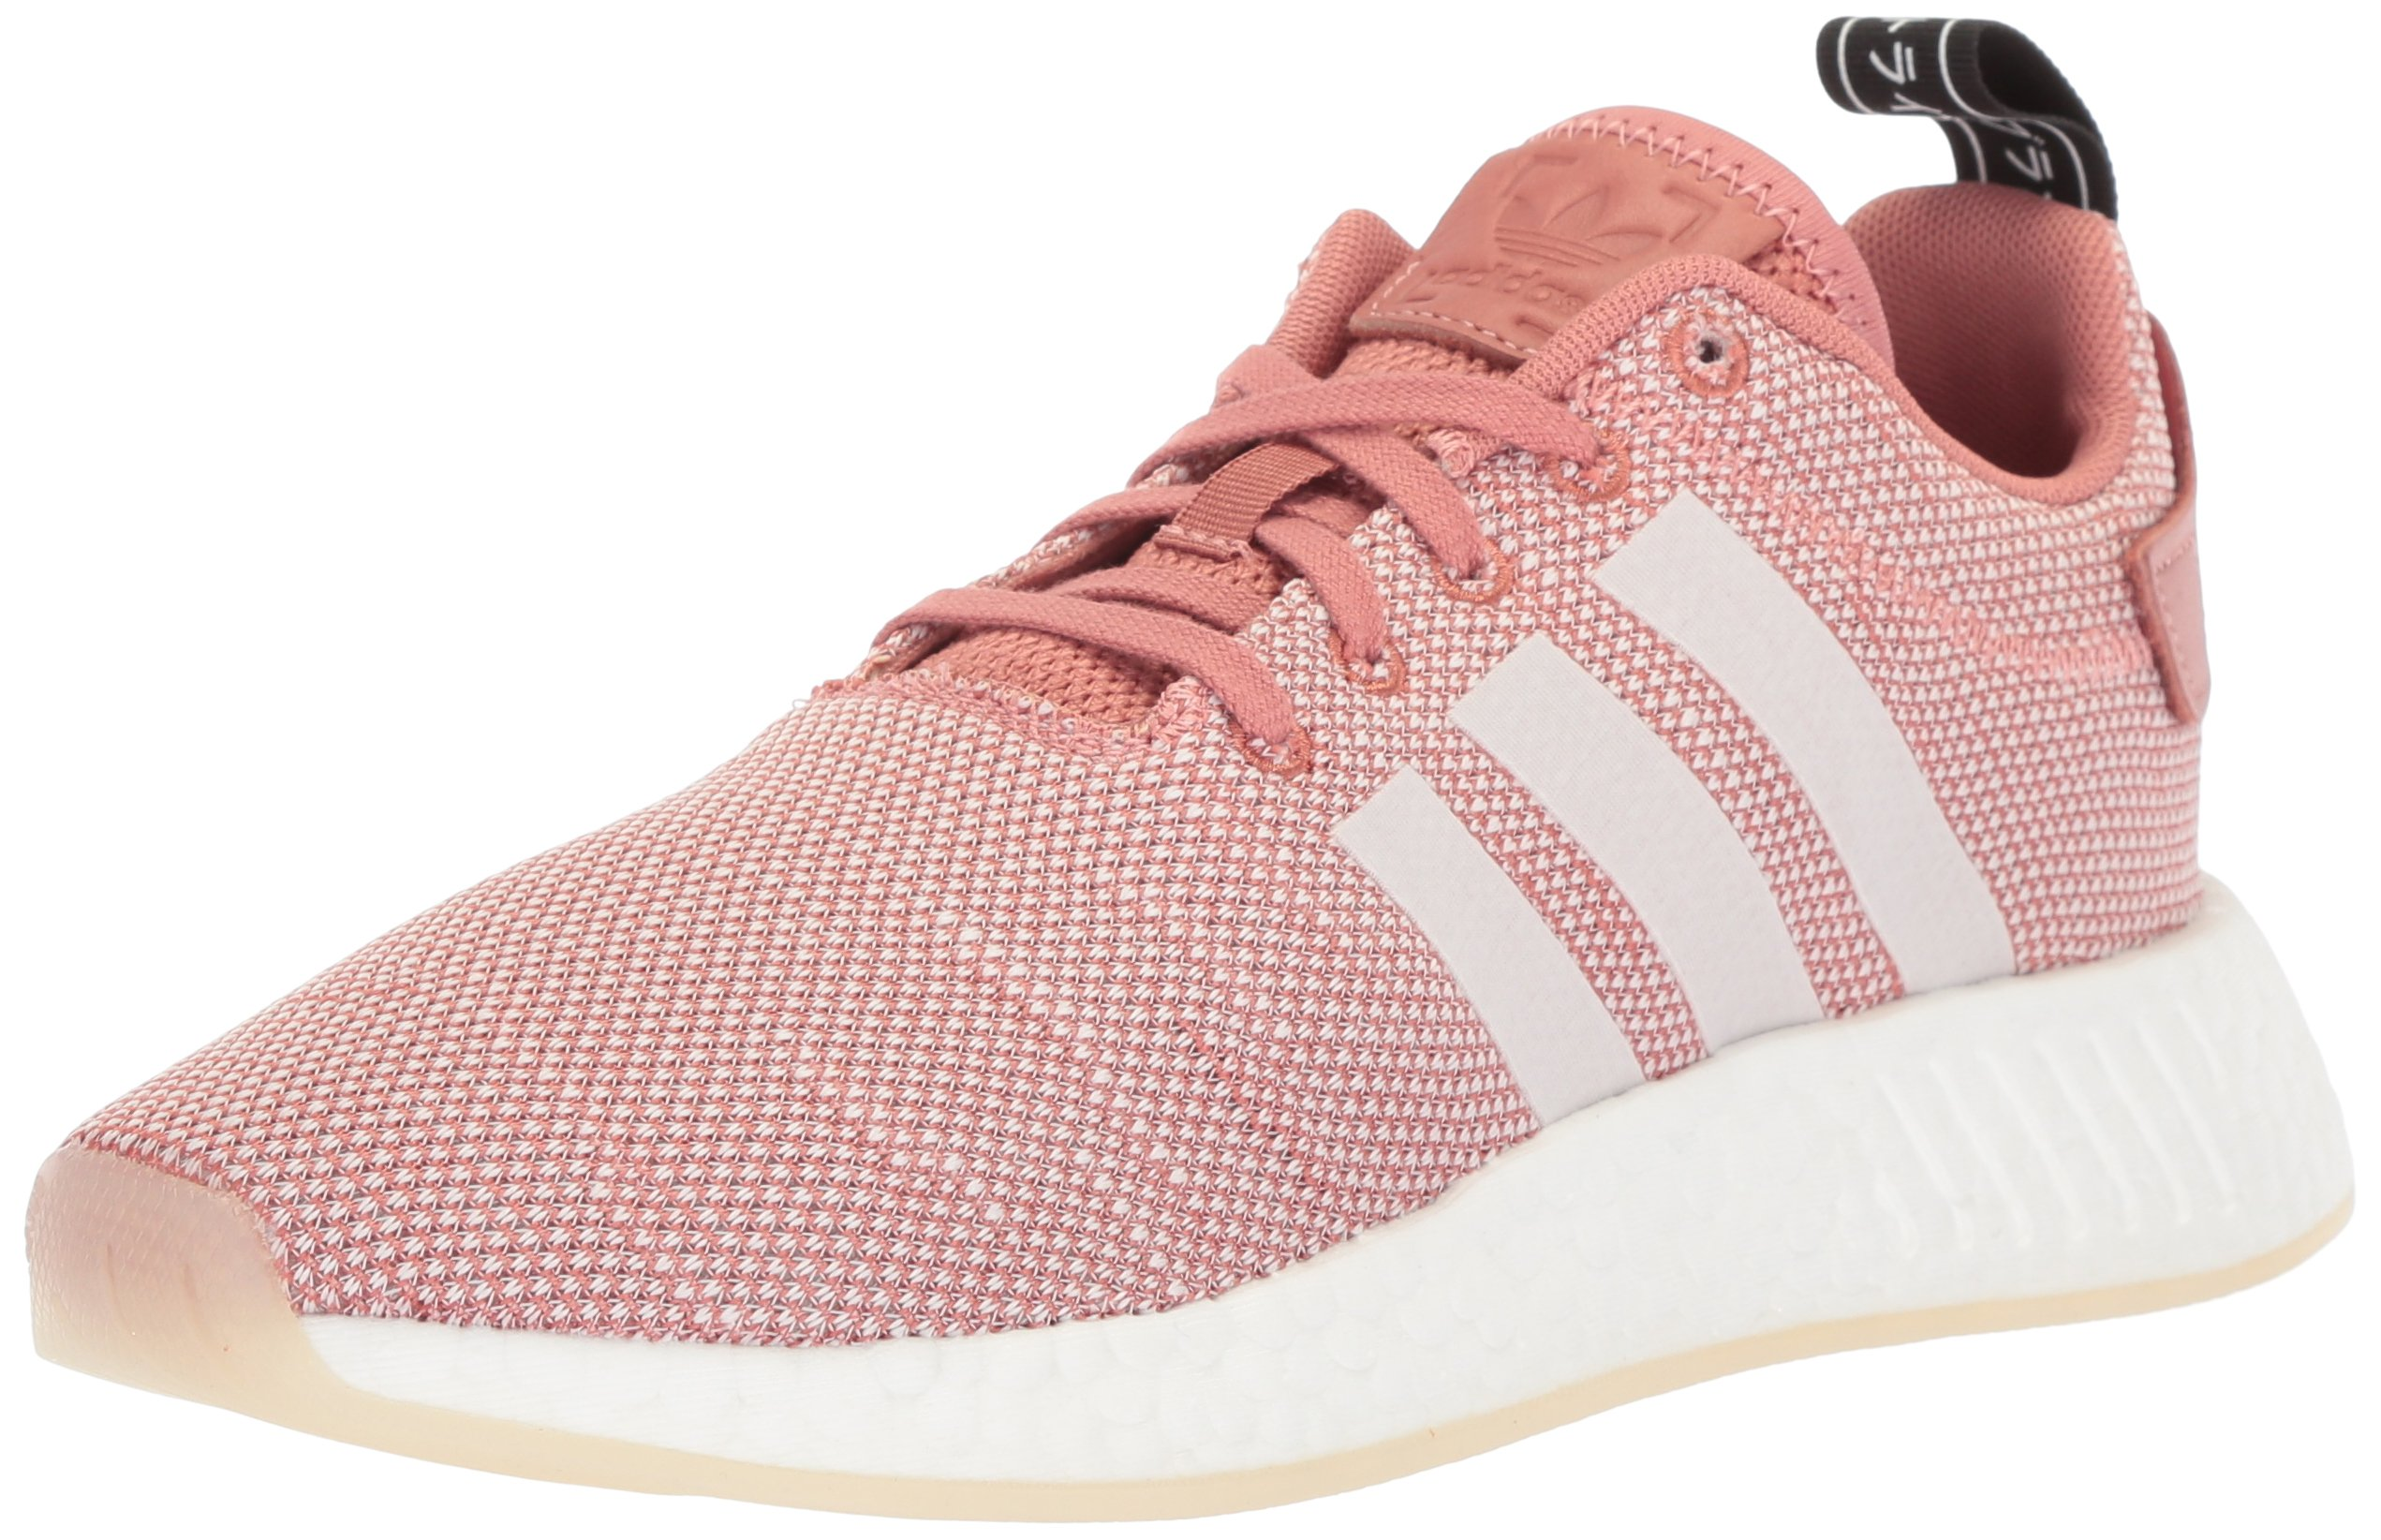 adidas Women's NMD_r2 Running Shoe Style Number CQ2007 by adidas